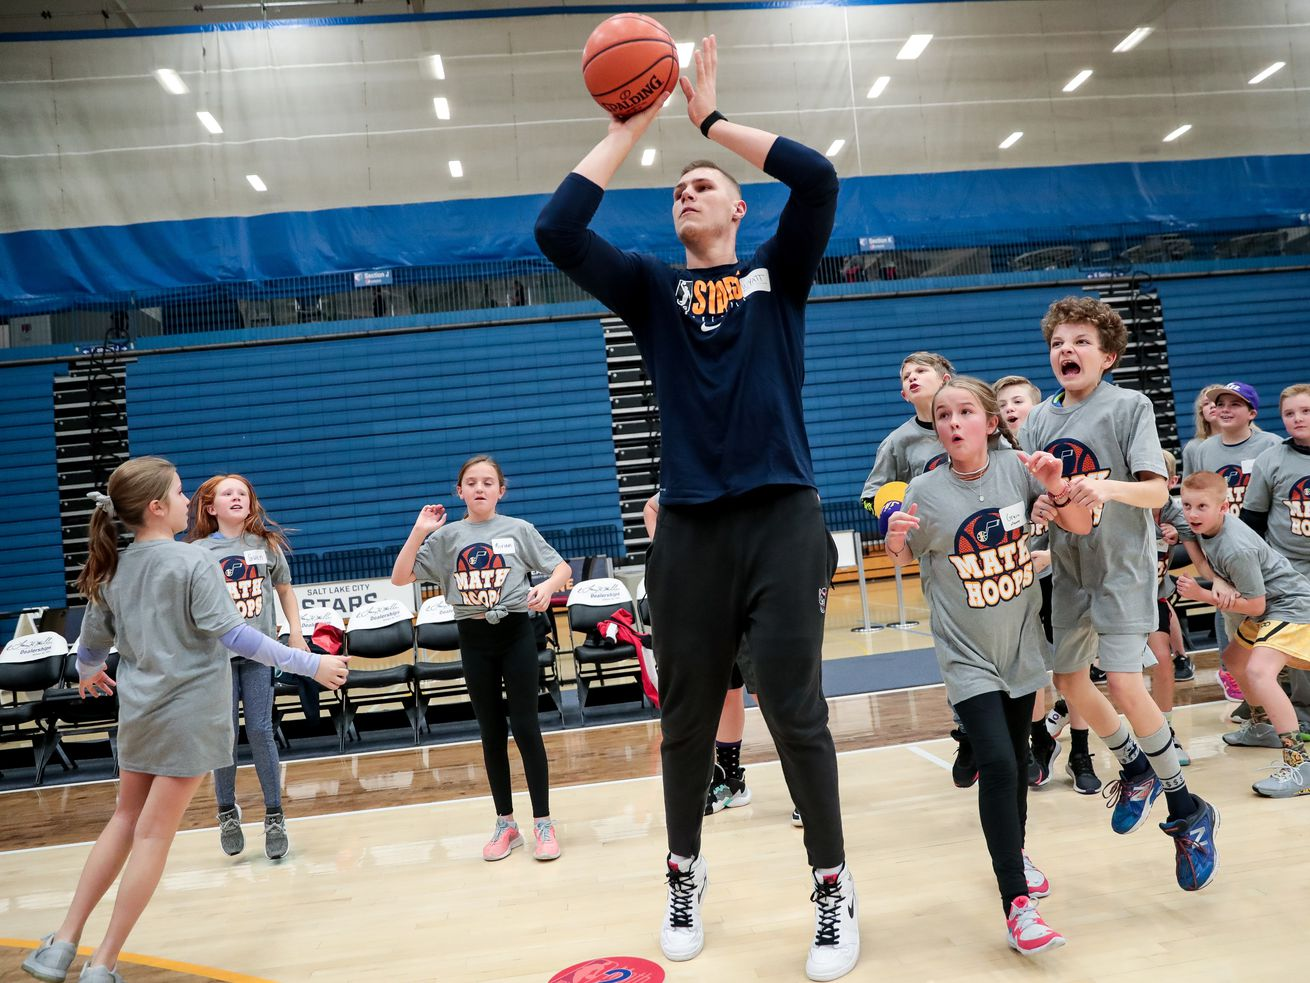 Salt Lake City Stars forward Wyatt Walker shoots as Grace Mower, 10, second from right, Jonathan Welch, 11, right, and other students from Carden Memorial School in Salt Lake City cheer him on during an NBA Math Hoops Live event at Salt Lake Community College's Bruin Arena in Taylorsville on Tuesday, Jan. 14, 2020.